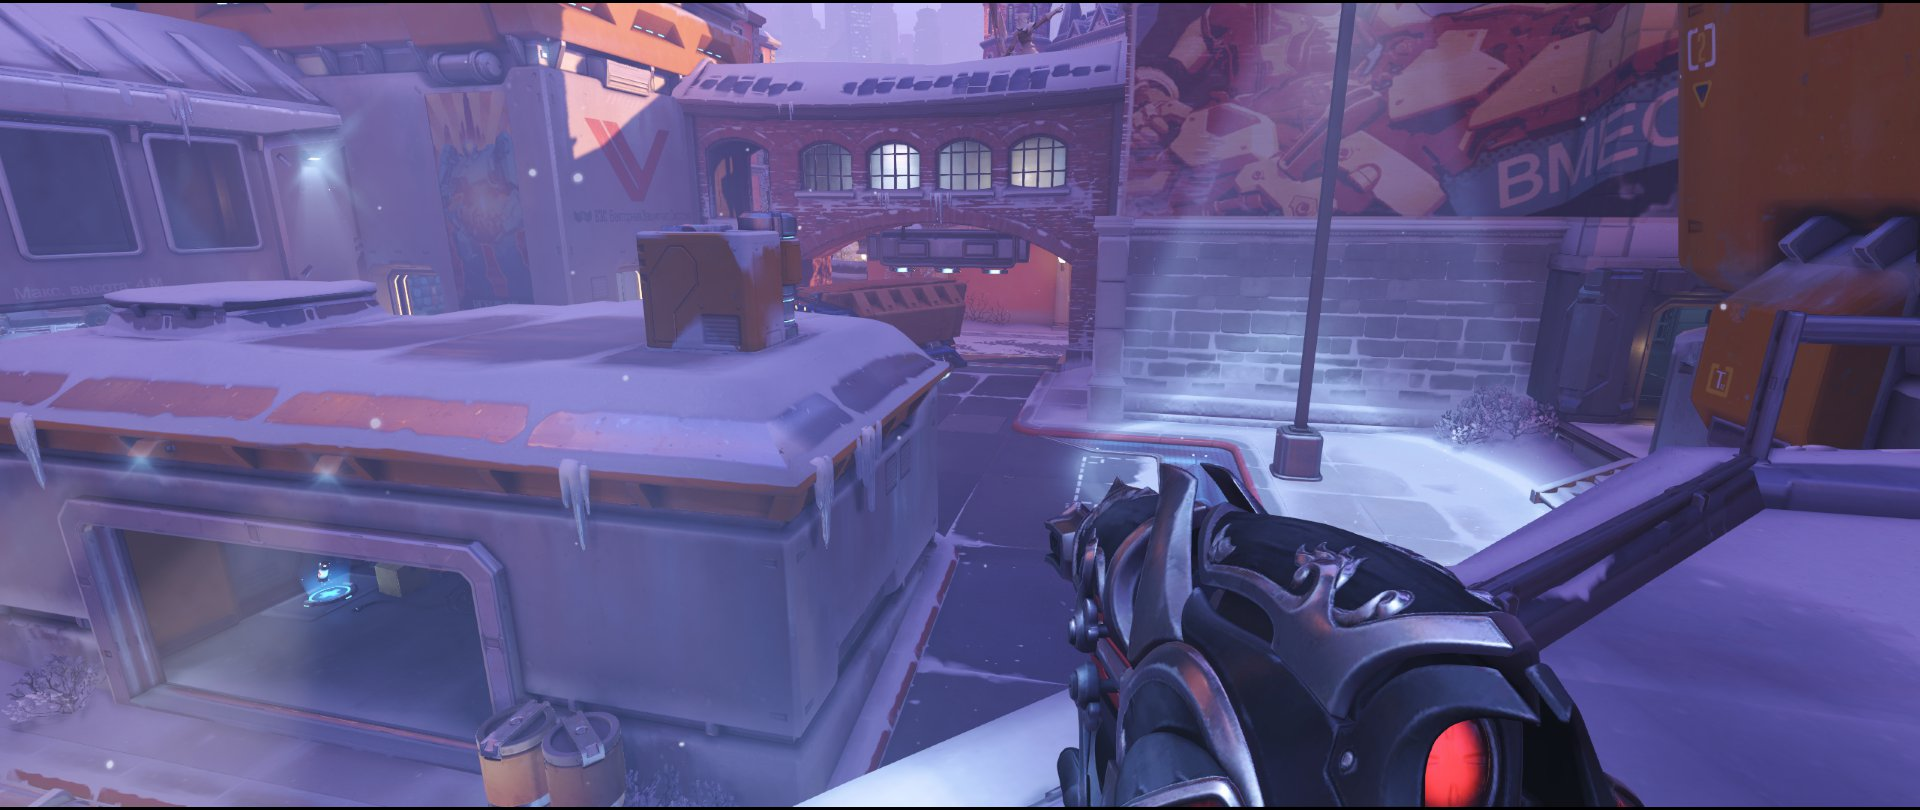 Comms high ground defense sniping spot Widowmaker Volskaya Industries Overwatch.jpg